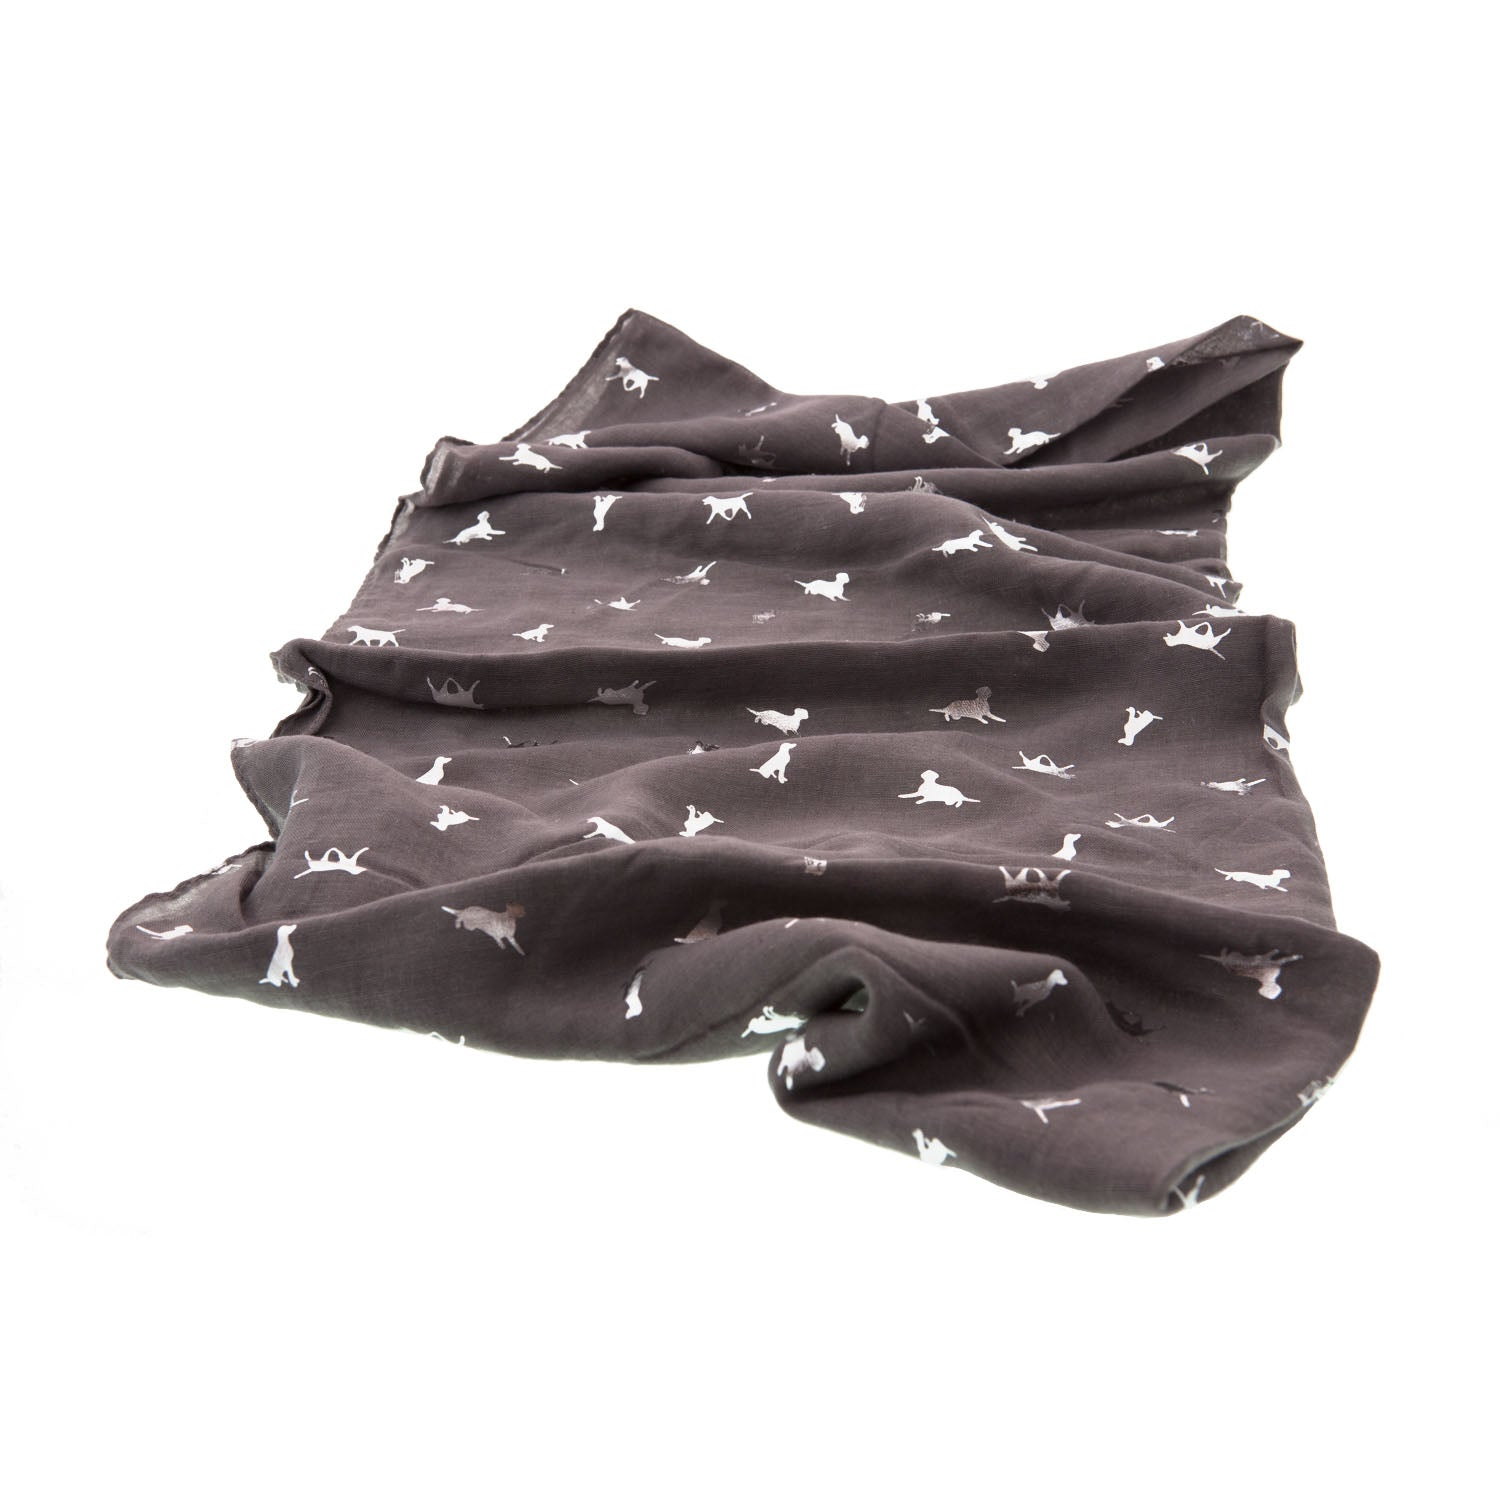 DogKrazy.gifts - Silver Labrador Scarf, Grey with silver prints of Labradors in various positions . Available from Dog Krazy Gifts